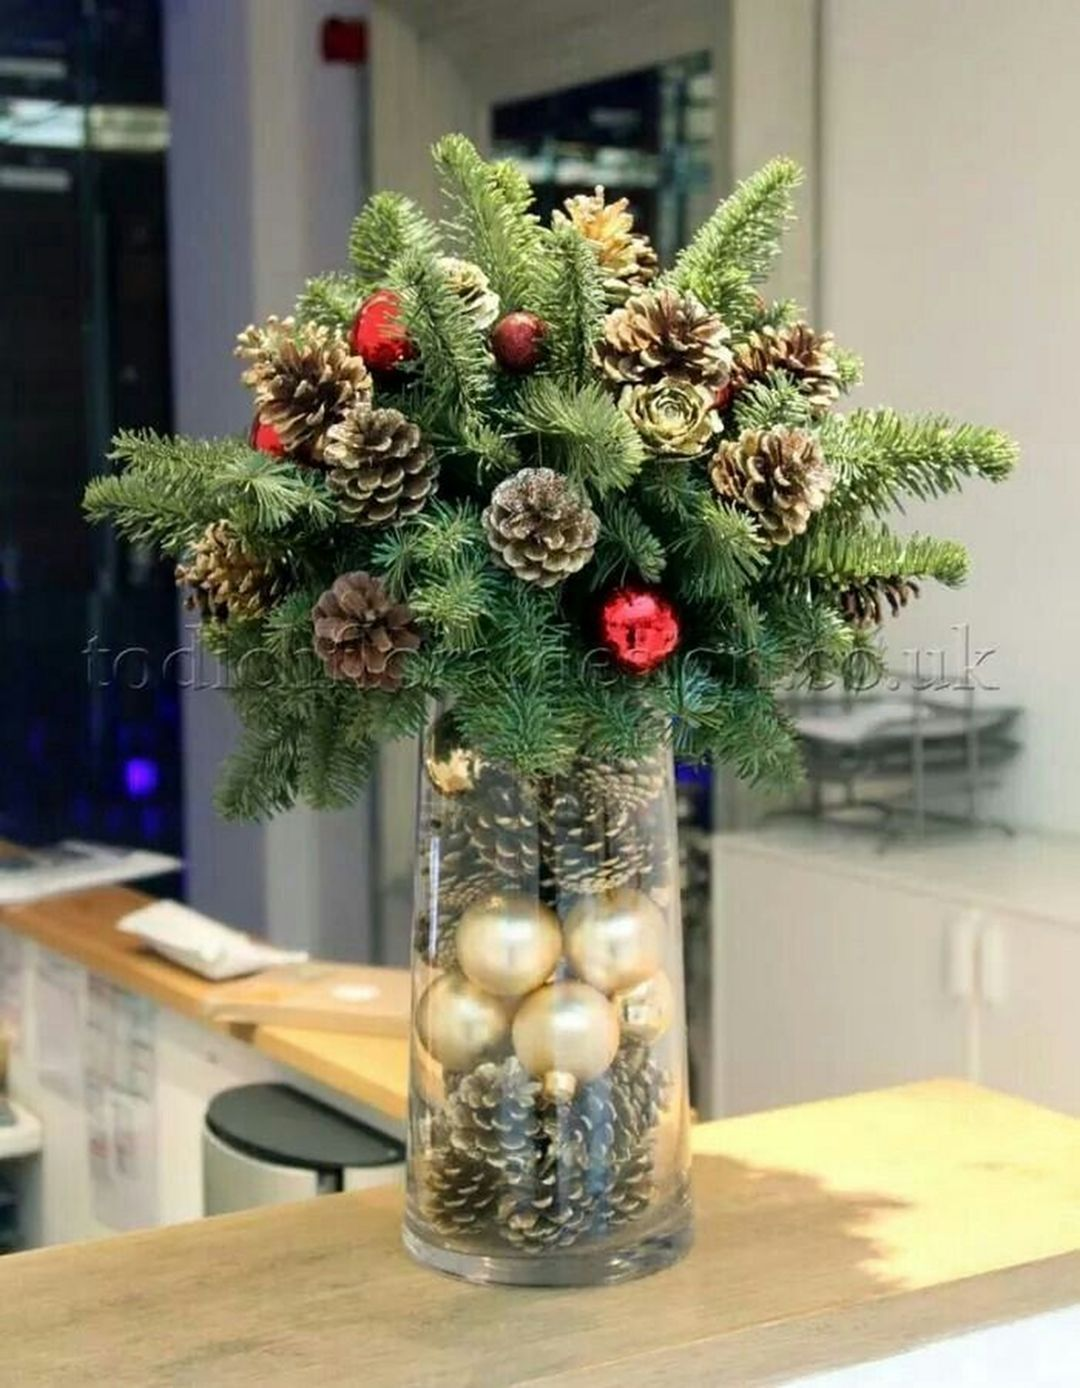 Pin By Maria On Christmas Christmas Flower Decorations Christmas Flower Arrangements Christmas Flowers